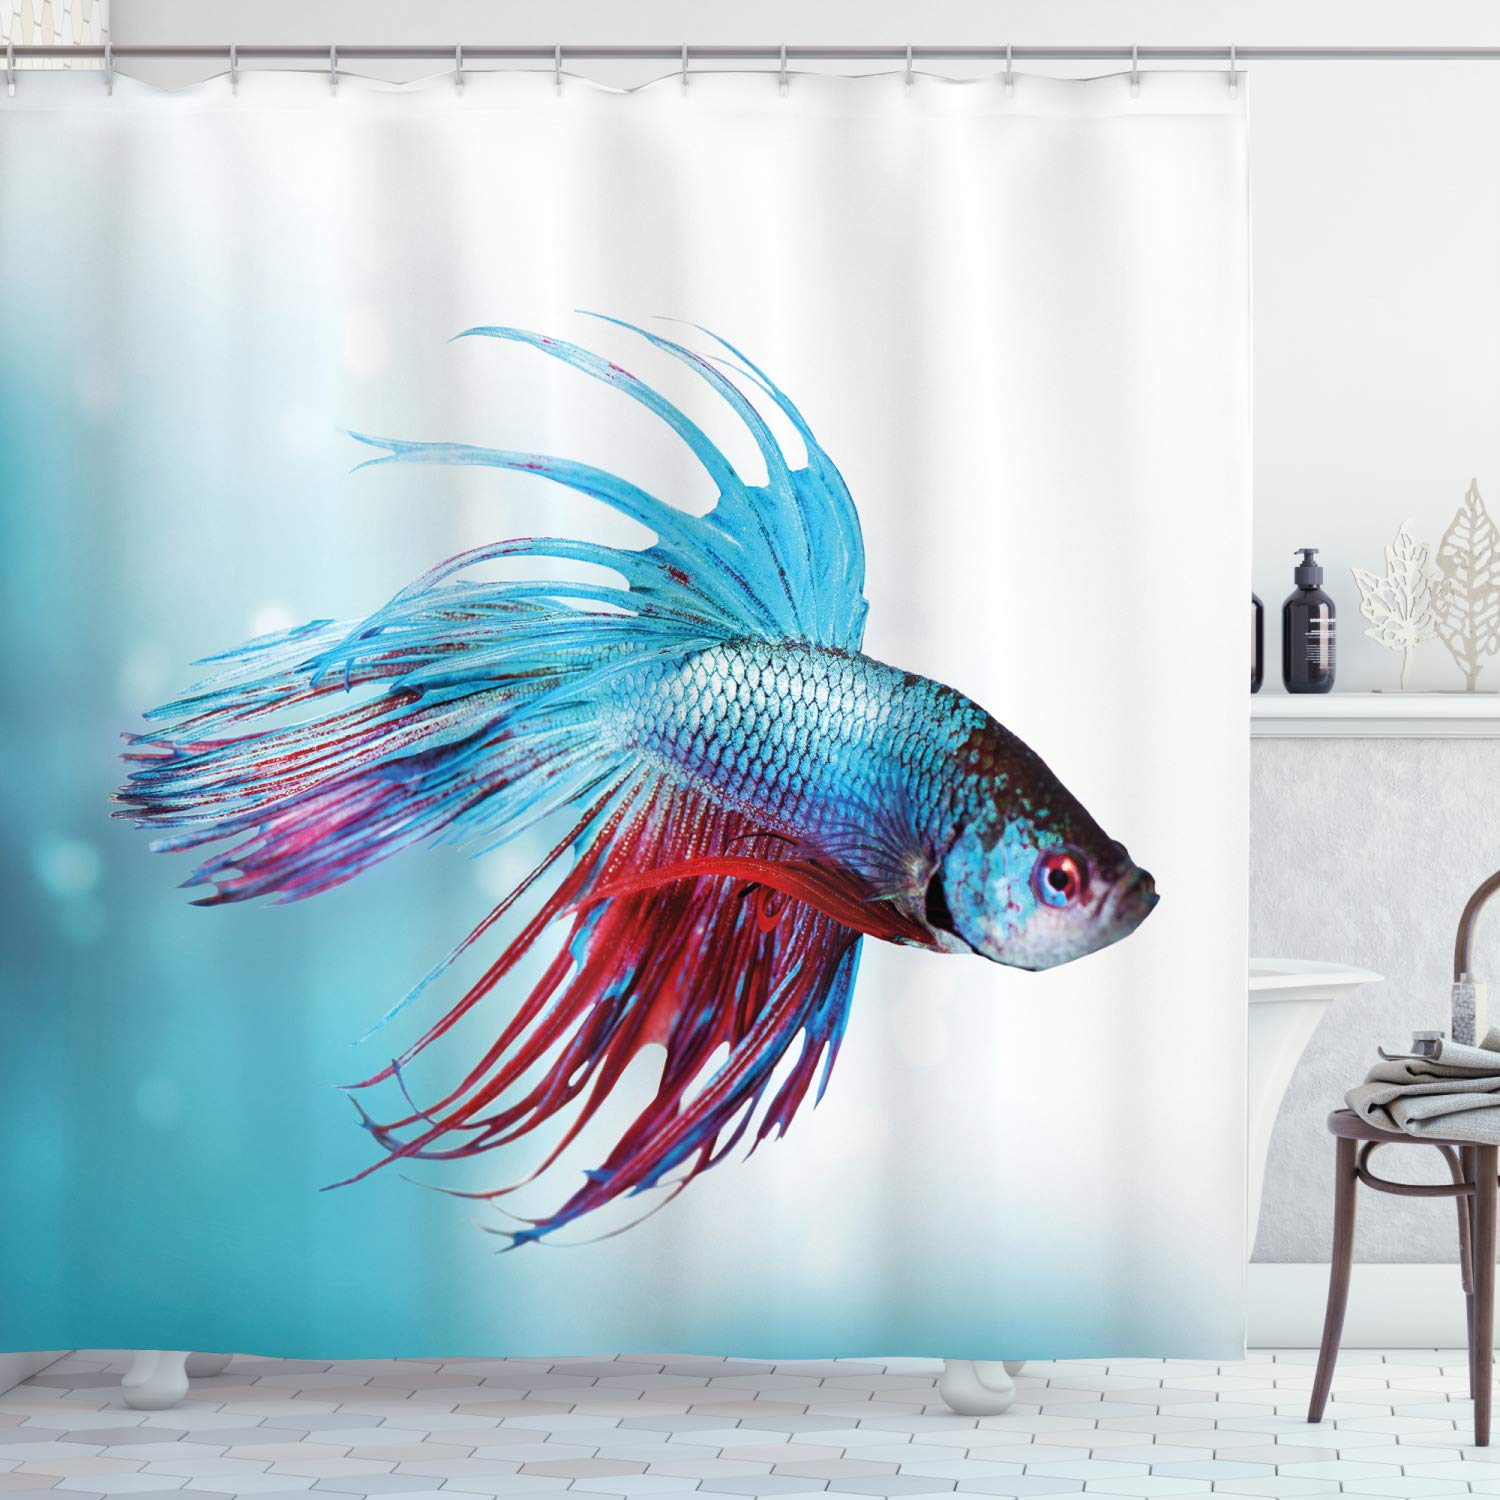 Ambesonne Aquarium Shower Curtain, Siamese Betta Fish Swimming in Aquarium Aggressive Sea Animal Nautical, Fabric Bathroom Decor Set with Hooks, 70 inches, Sky Blue Dark Coral